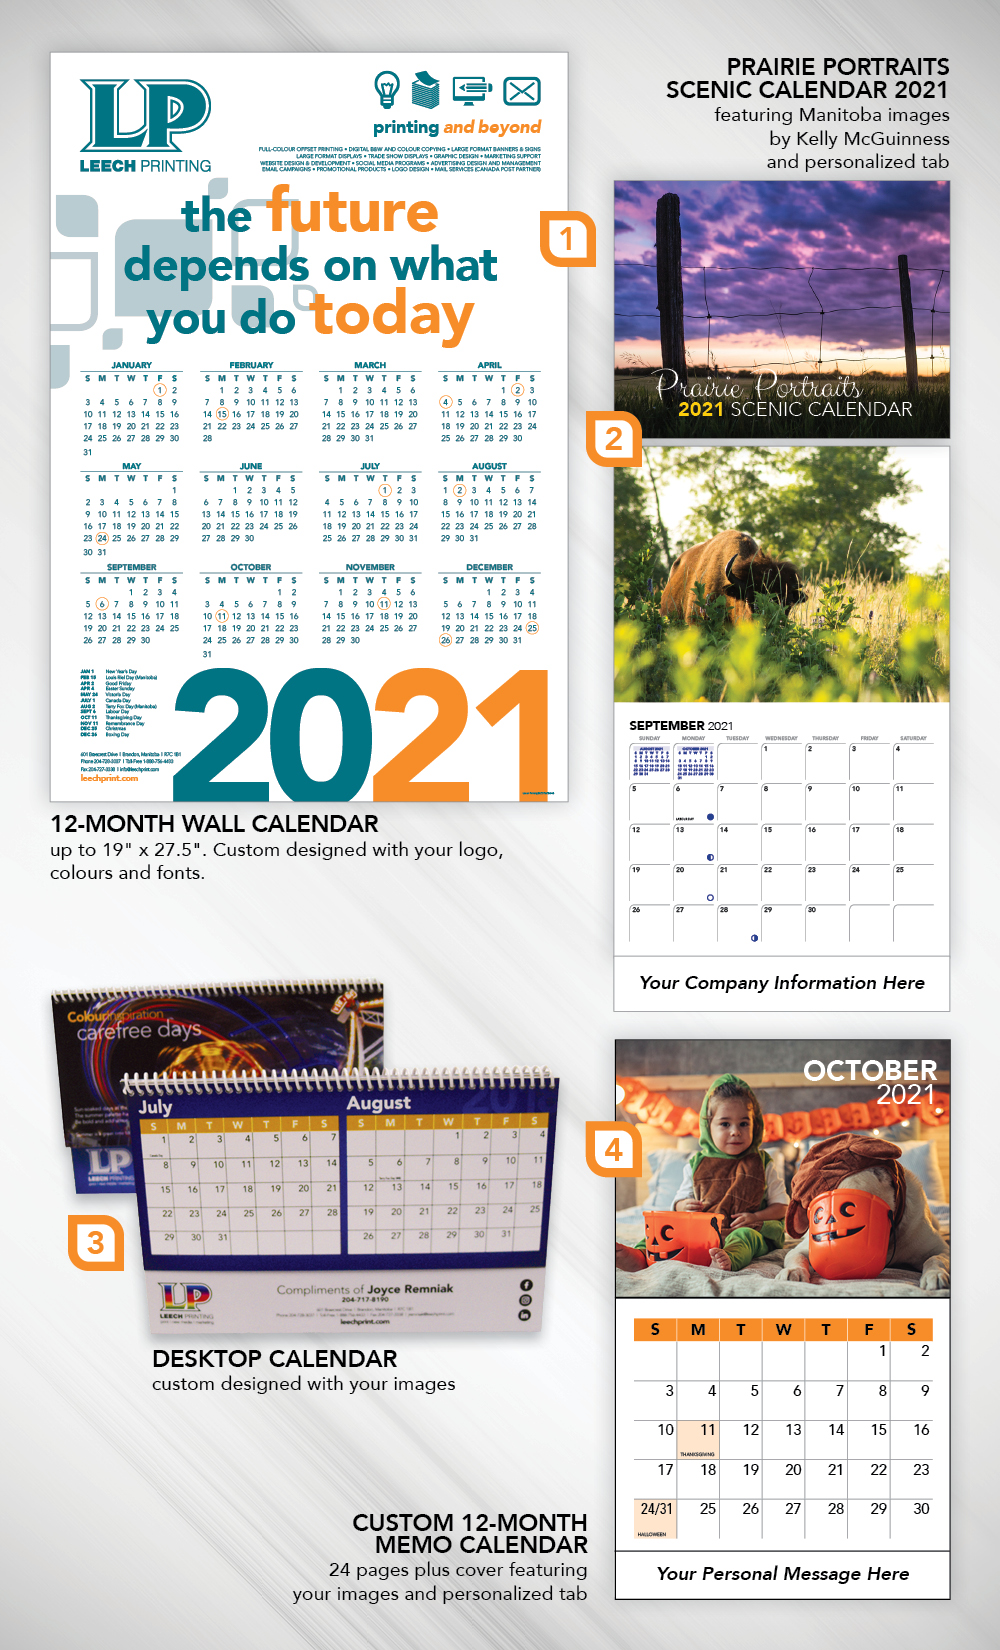 Custom calendars from Leech Printing • 2021 calendars • Calendar printing